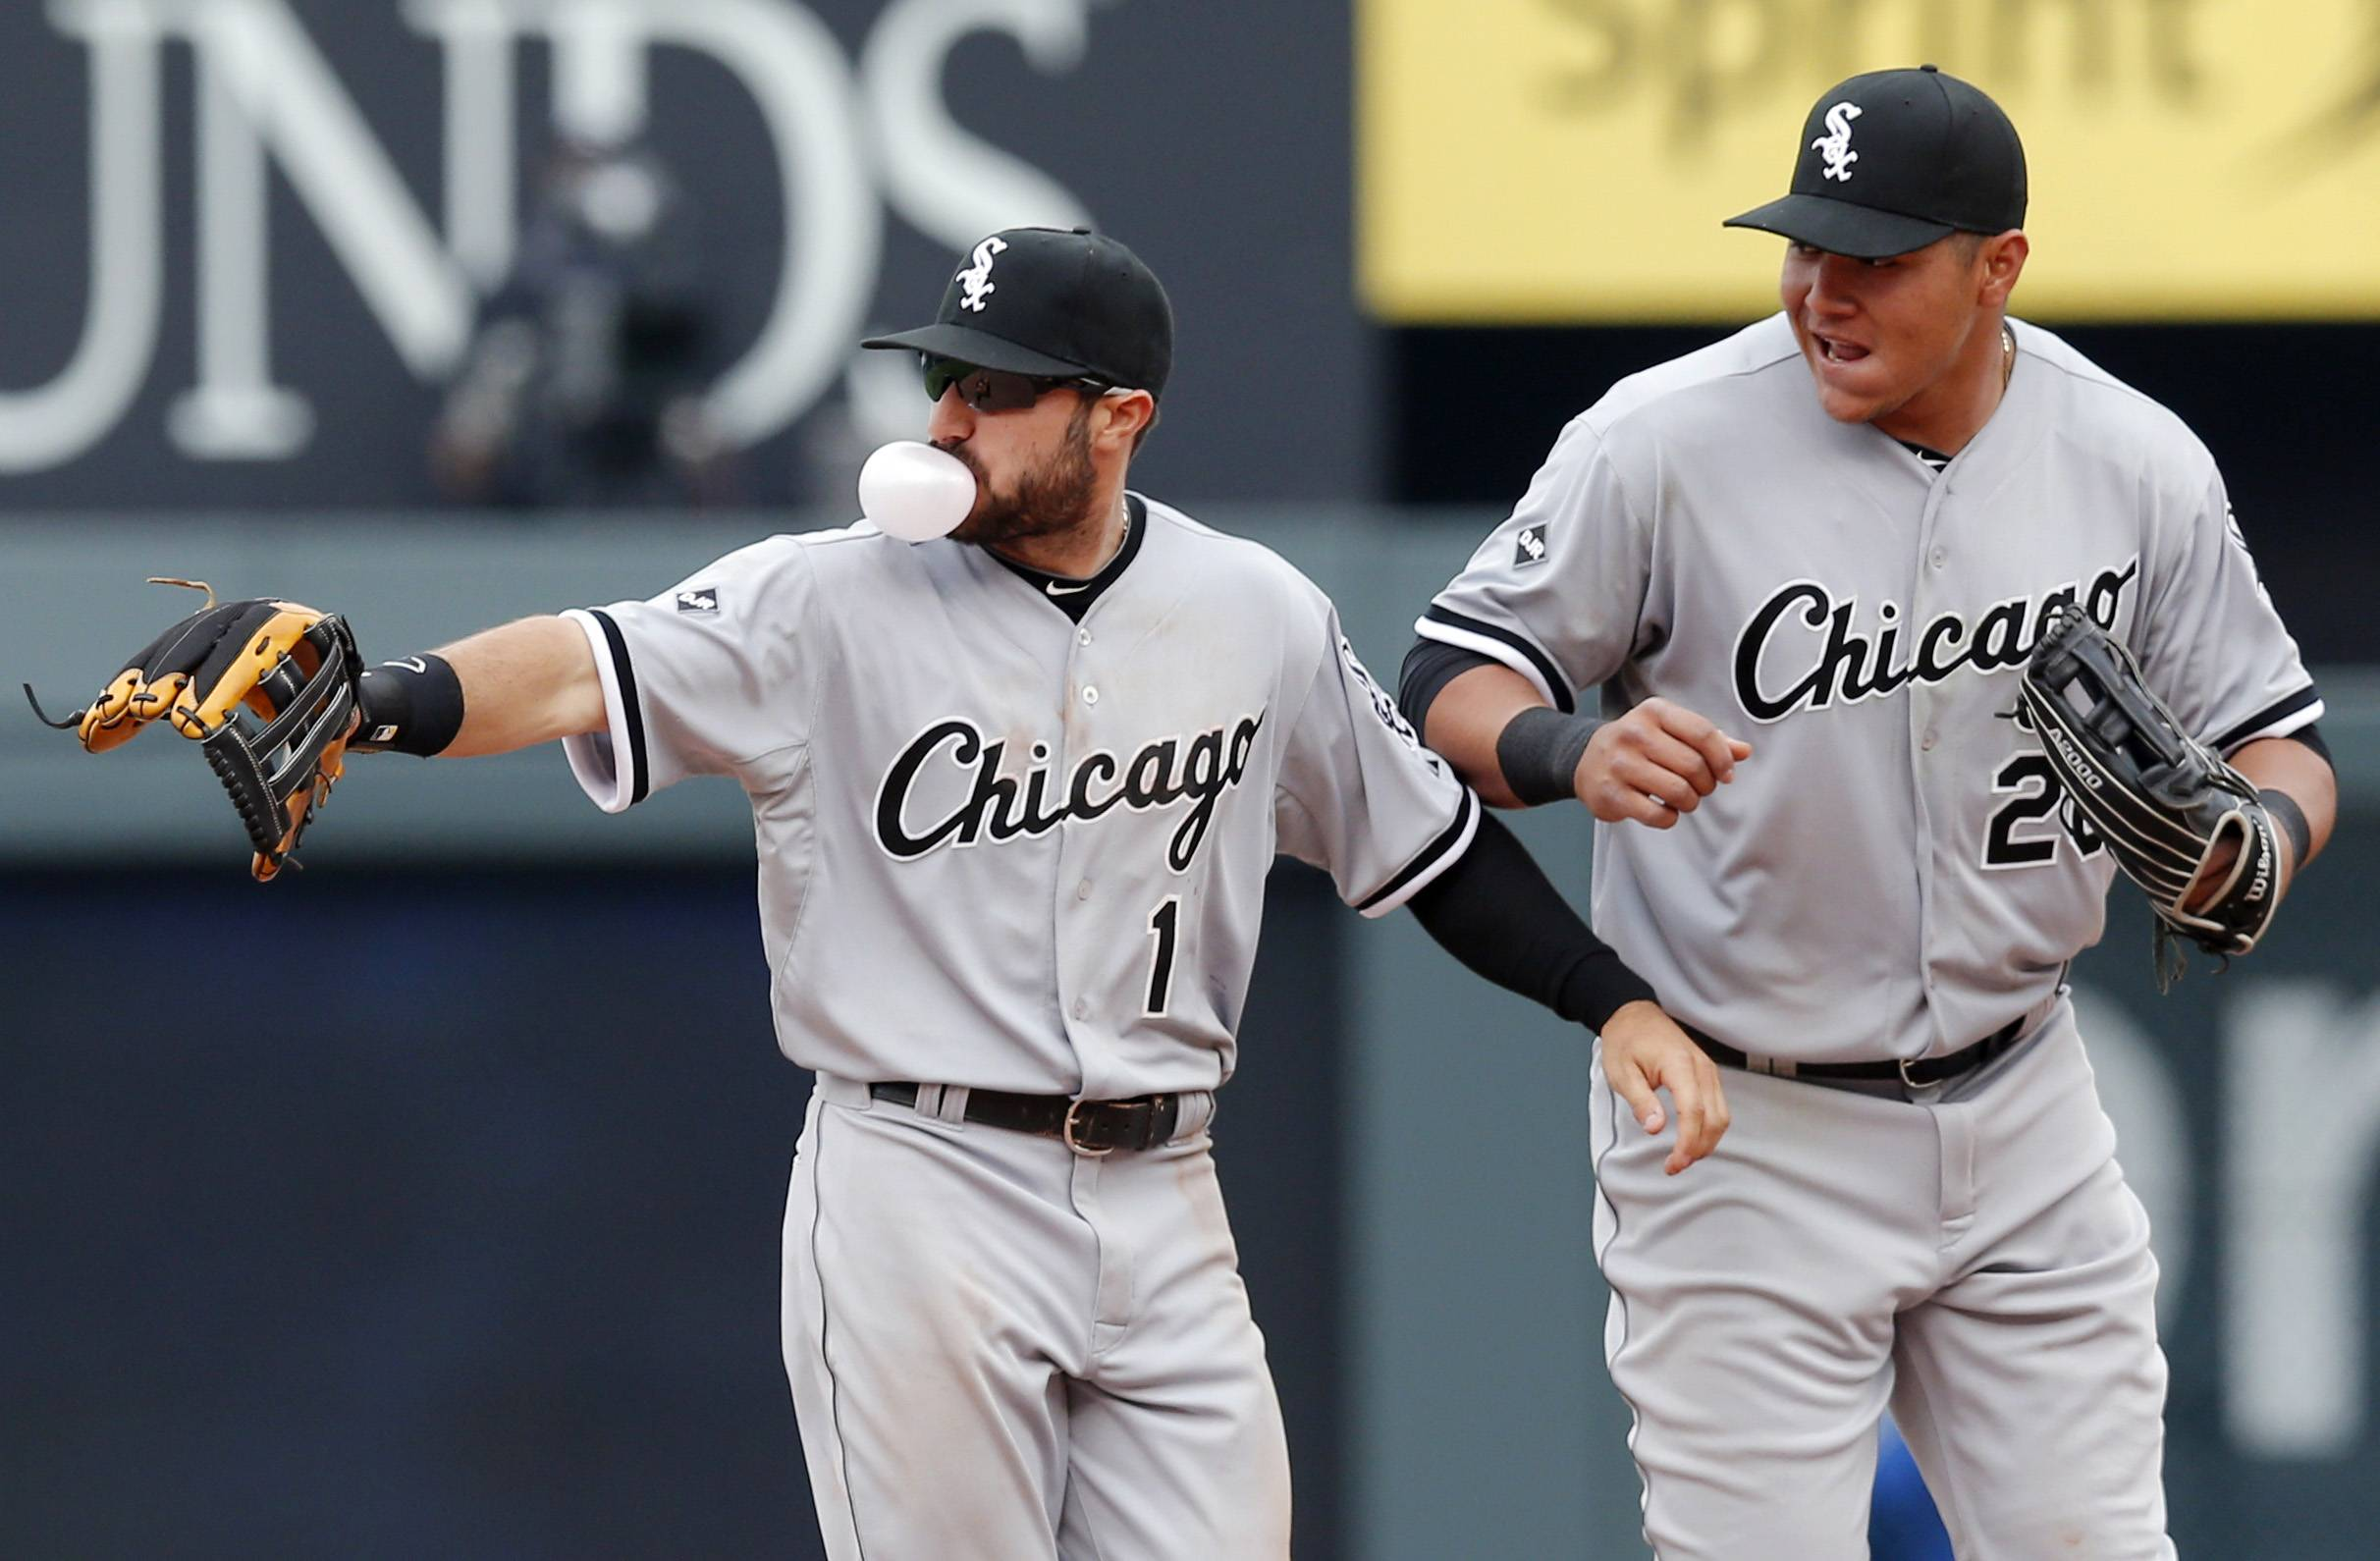 Chicago White Sox left fielder Adam Eaton (1) and right fielder Avisail Garcia (26) celebrate following a baseball game against the Kansas City Royals at Kauffman Stadium in Kansas City, Mo., Sunday, April 6, 2014. The White Sox won 5-1.